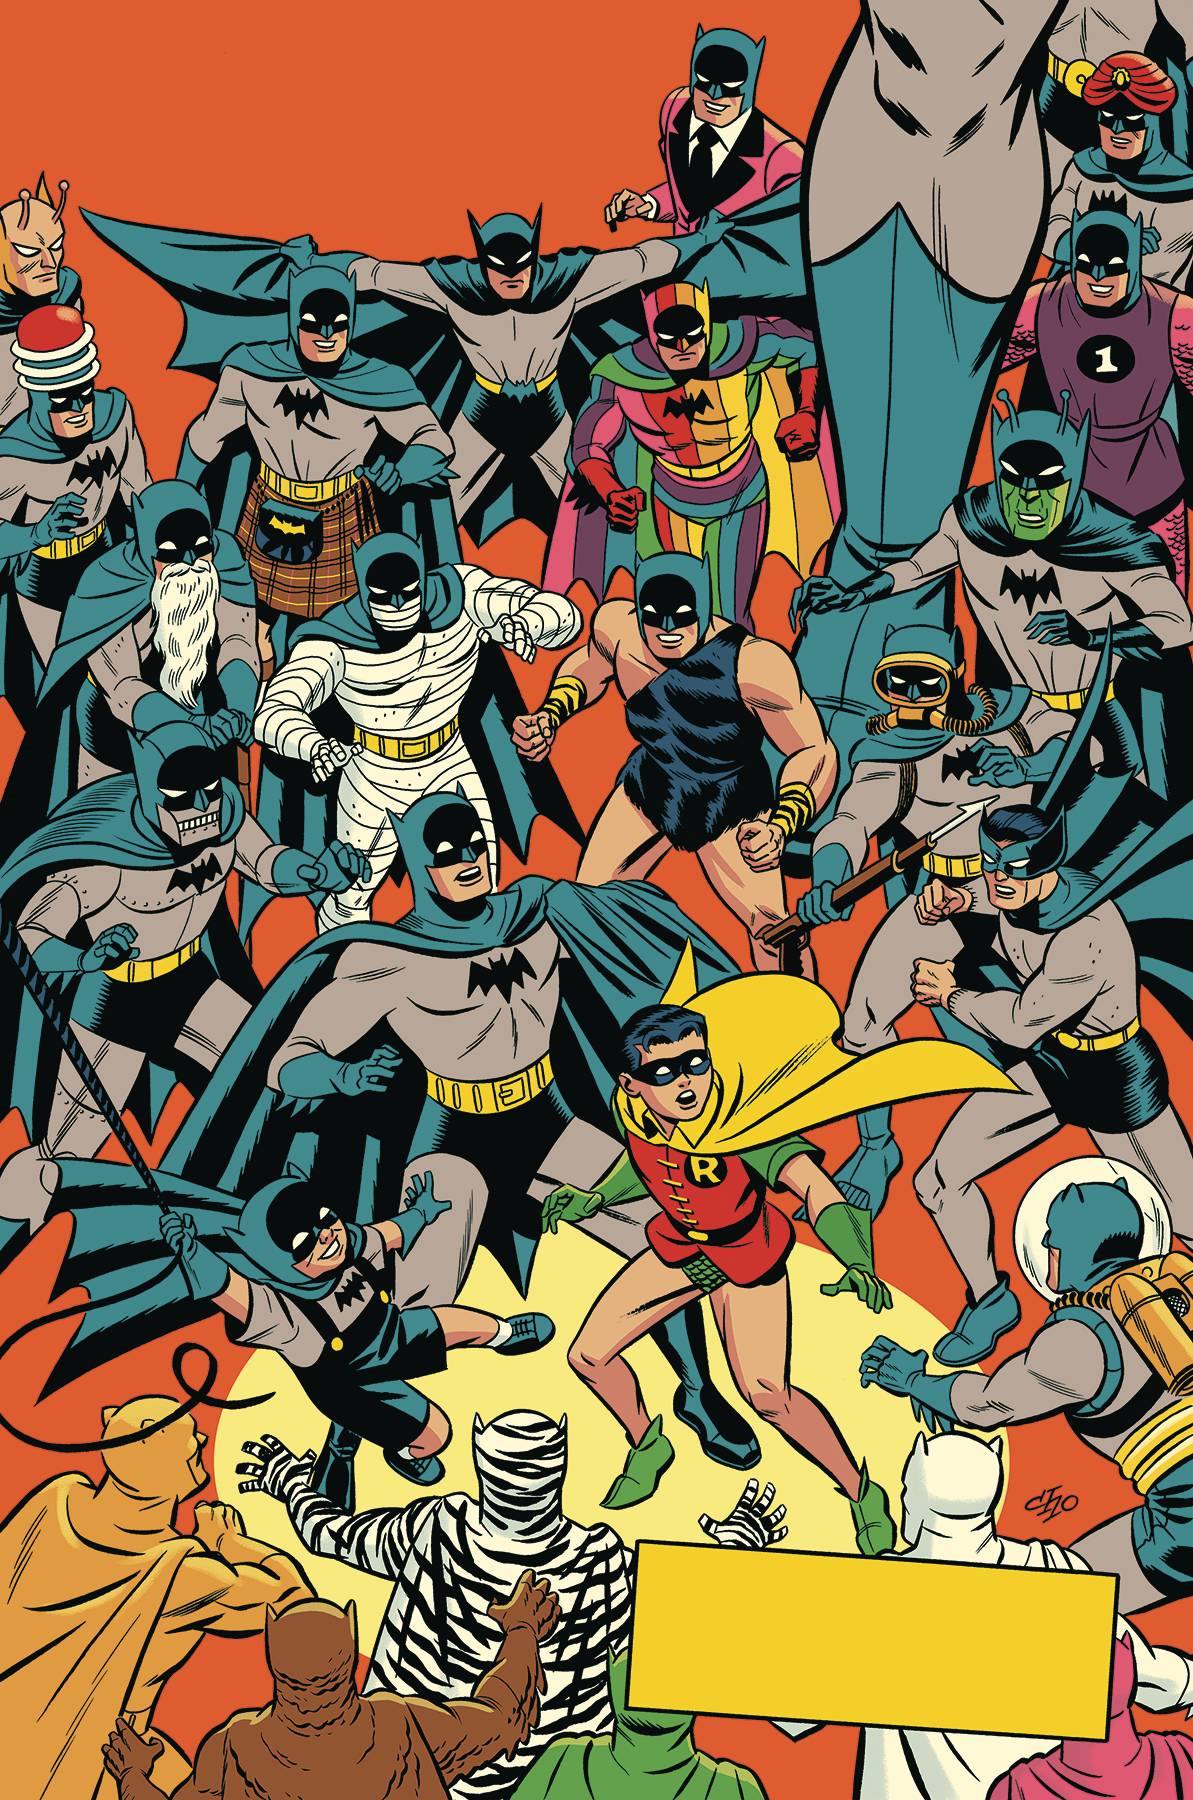 1950s variant by Michael Cho